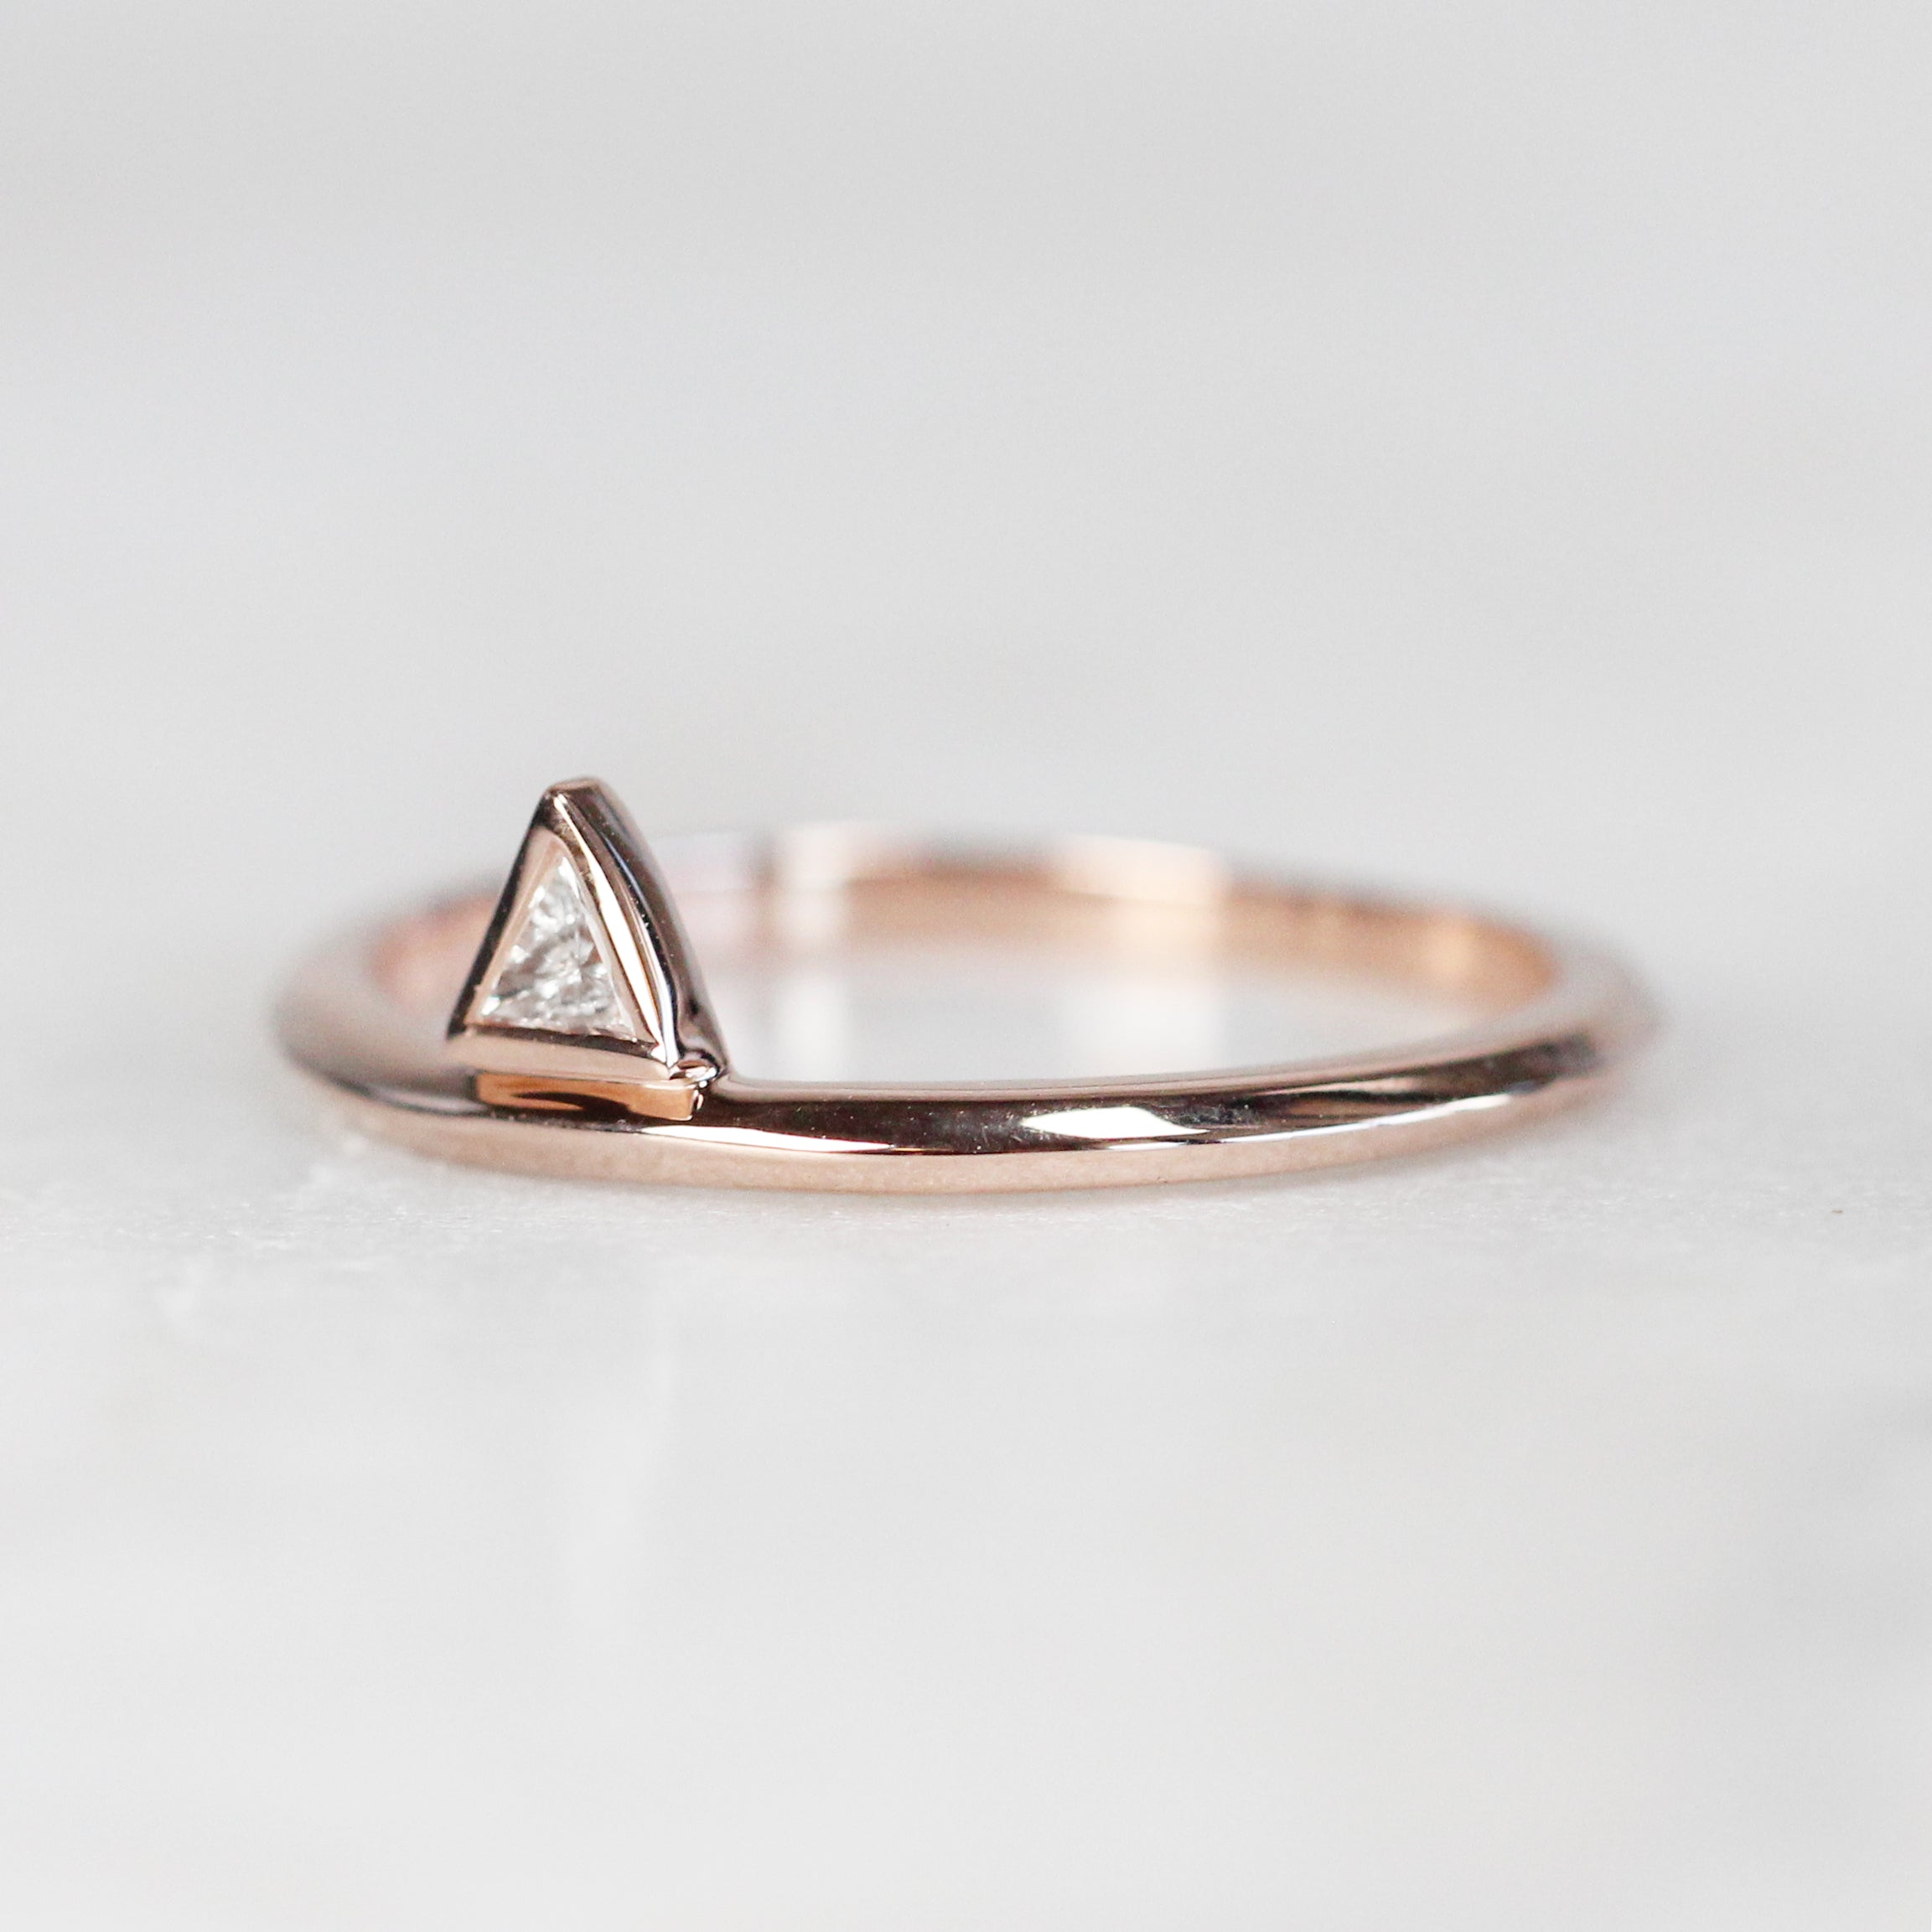 Minimal Diamond Triangle Stacking Ring in 14k Rose Gold - Ready to Size and Ship - Midwinter Co. Alternative Bridal Rings and Modern Fine Jewelry